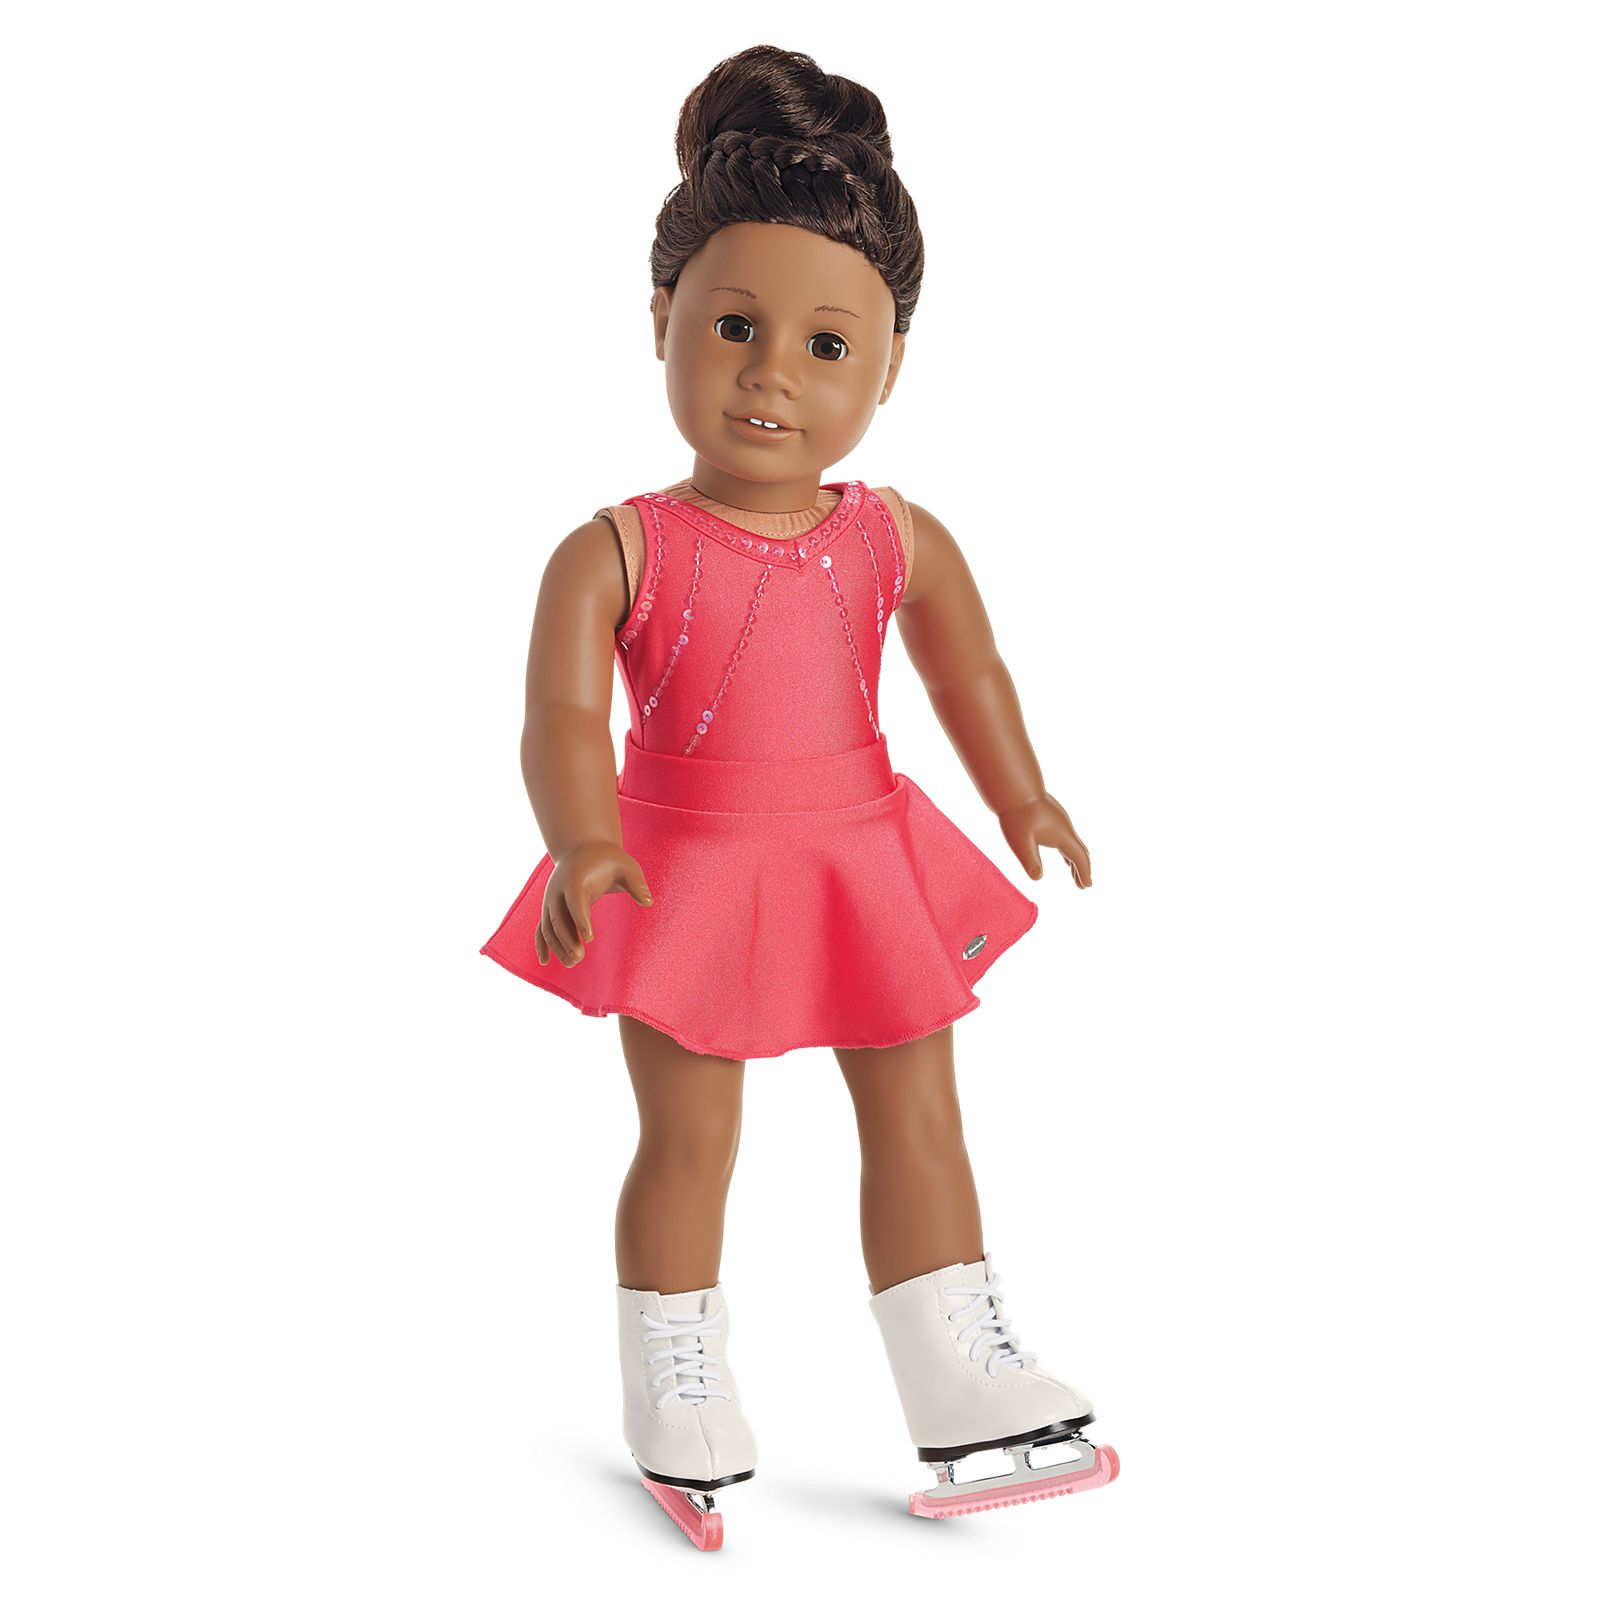 American Girl Starry Outfit With Sparkling Pink Boots For Dolls Brand New